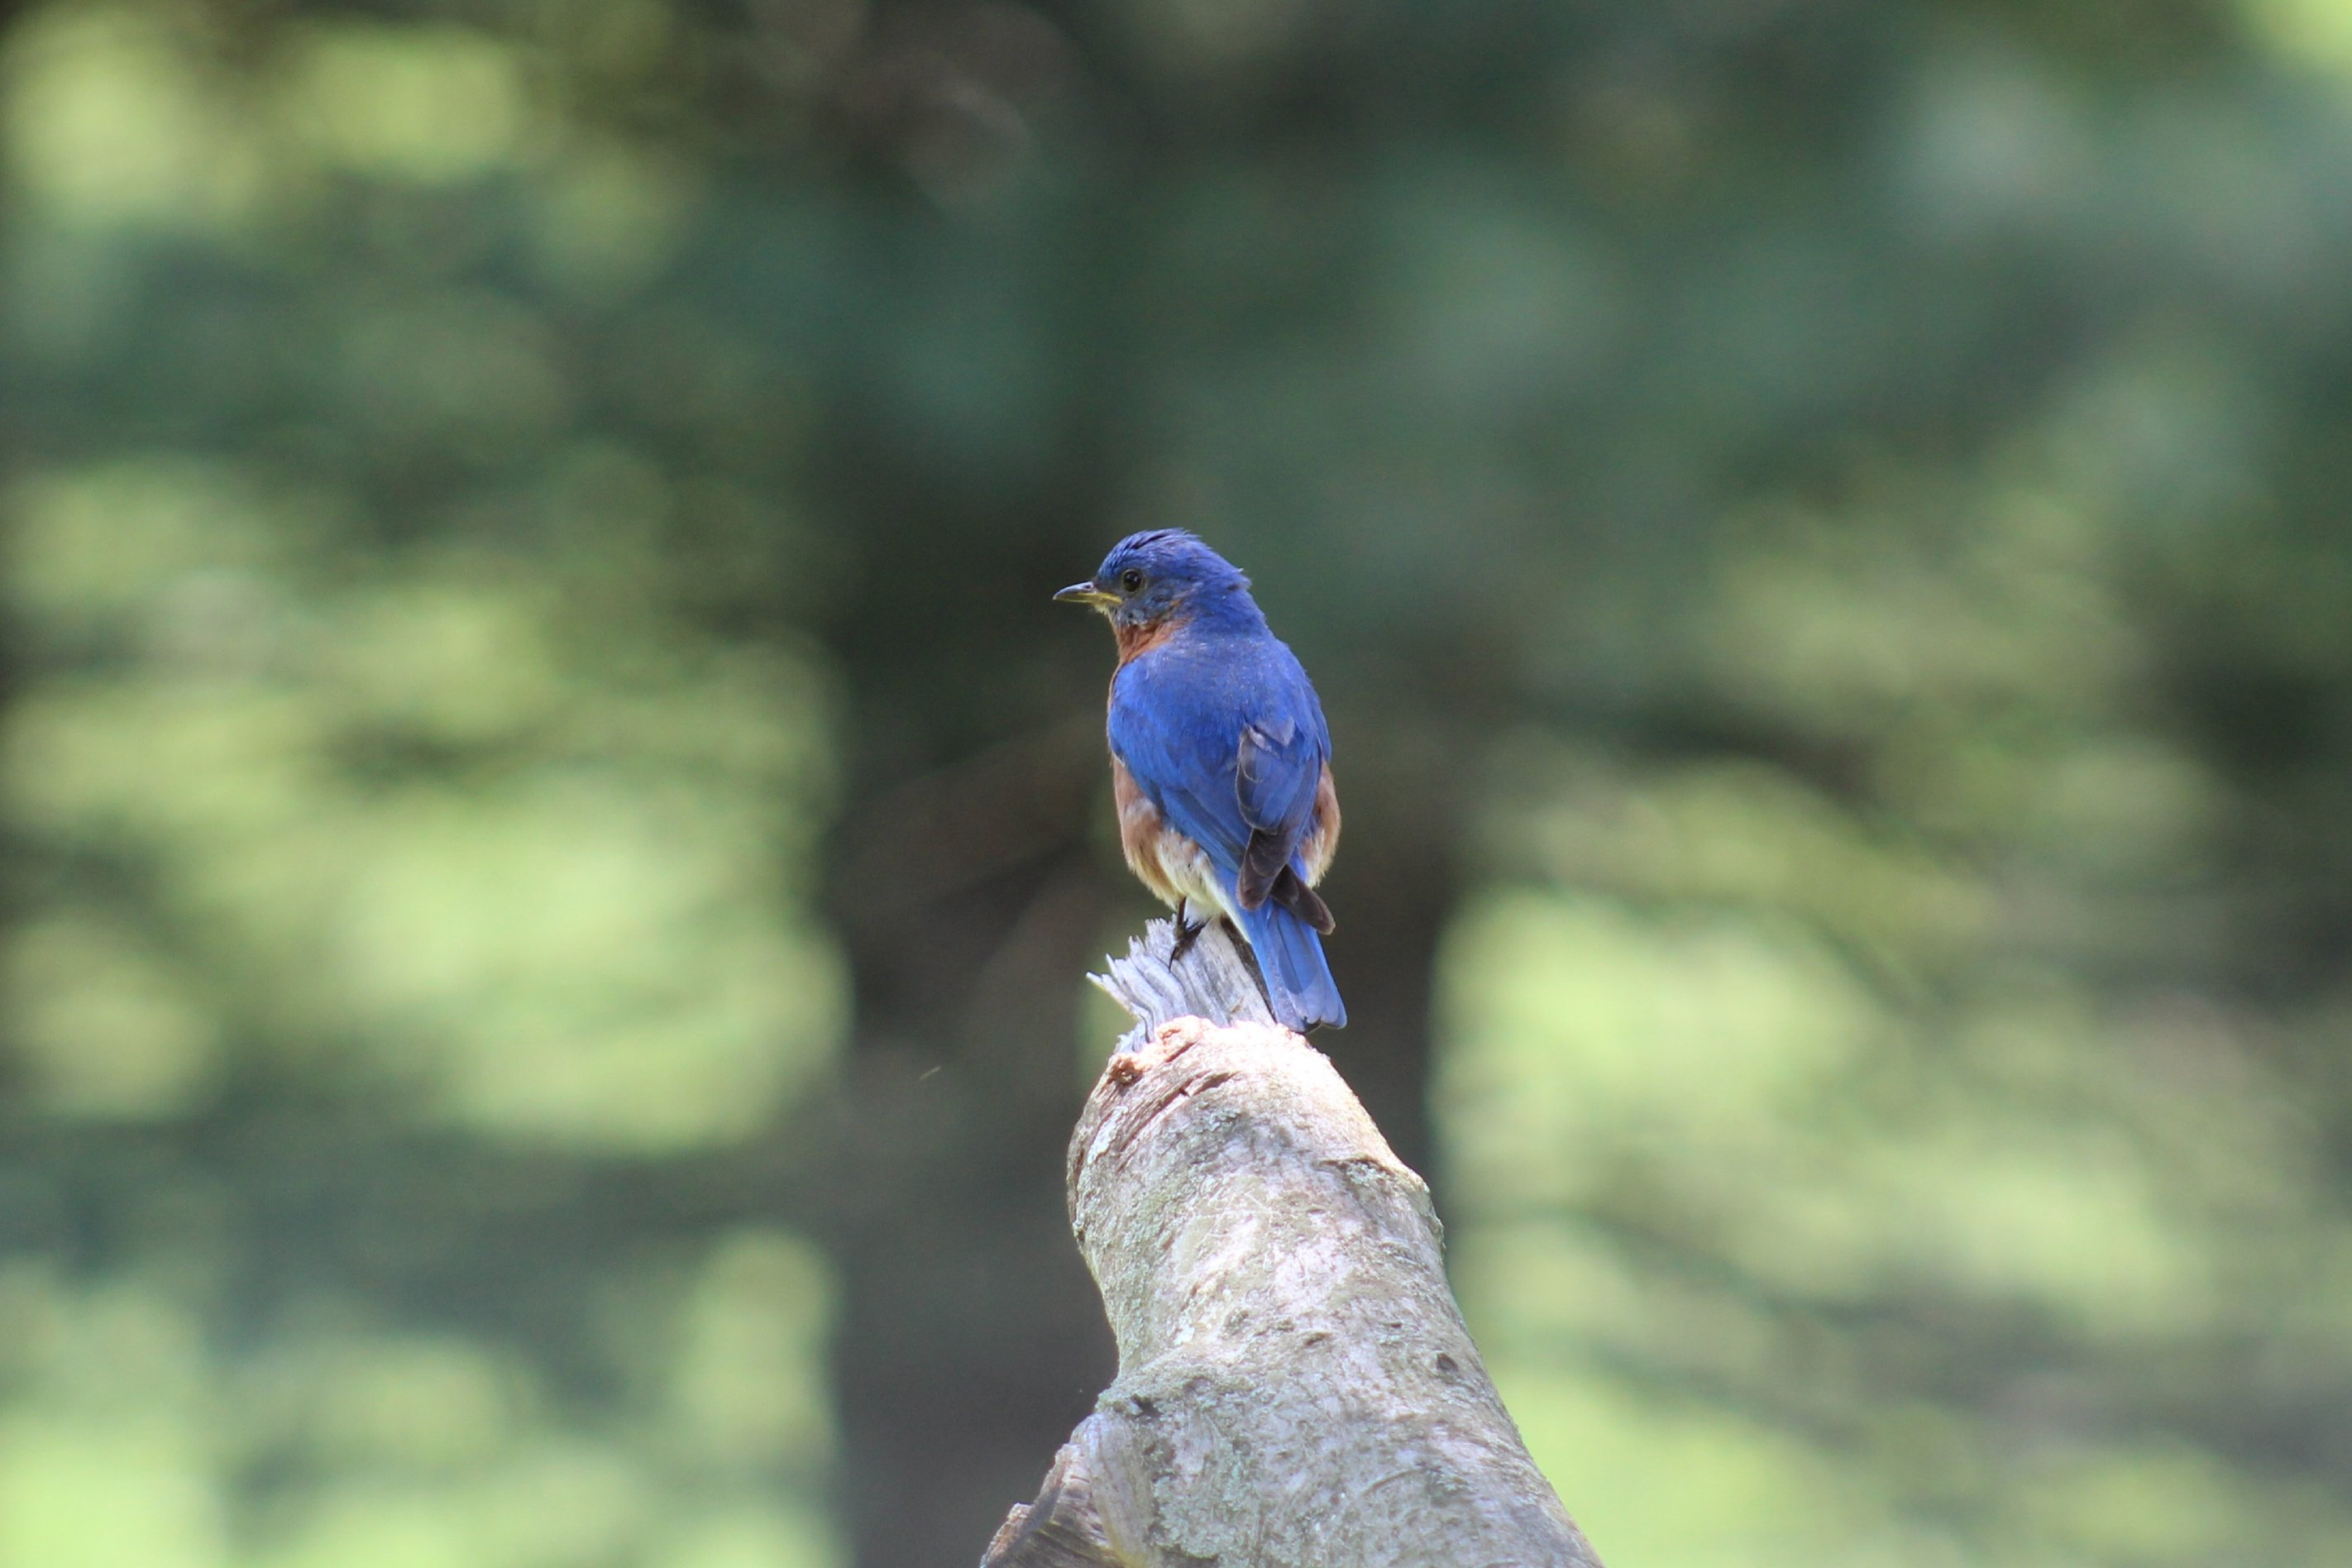 Male bluebird perched on Maple branch left - 06-01-2020